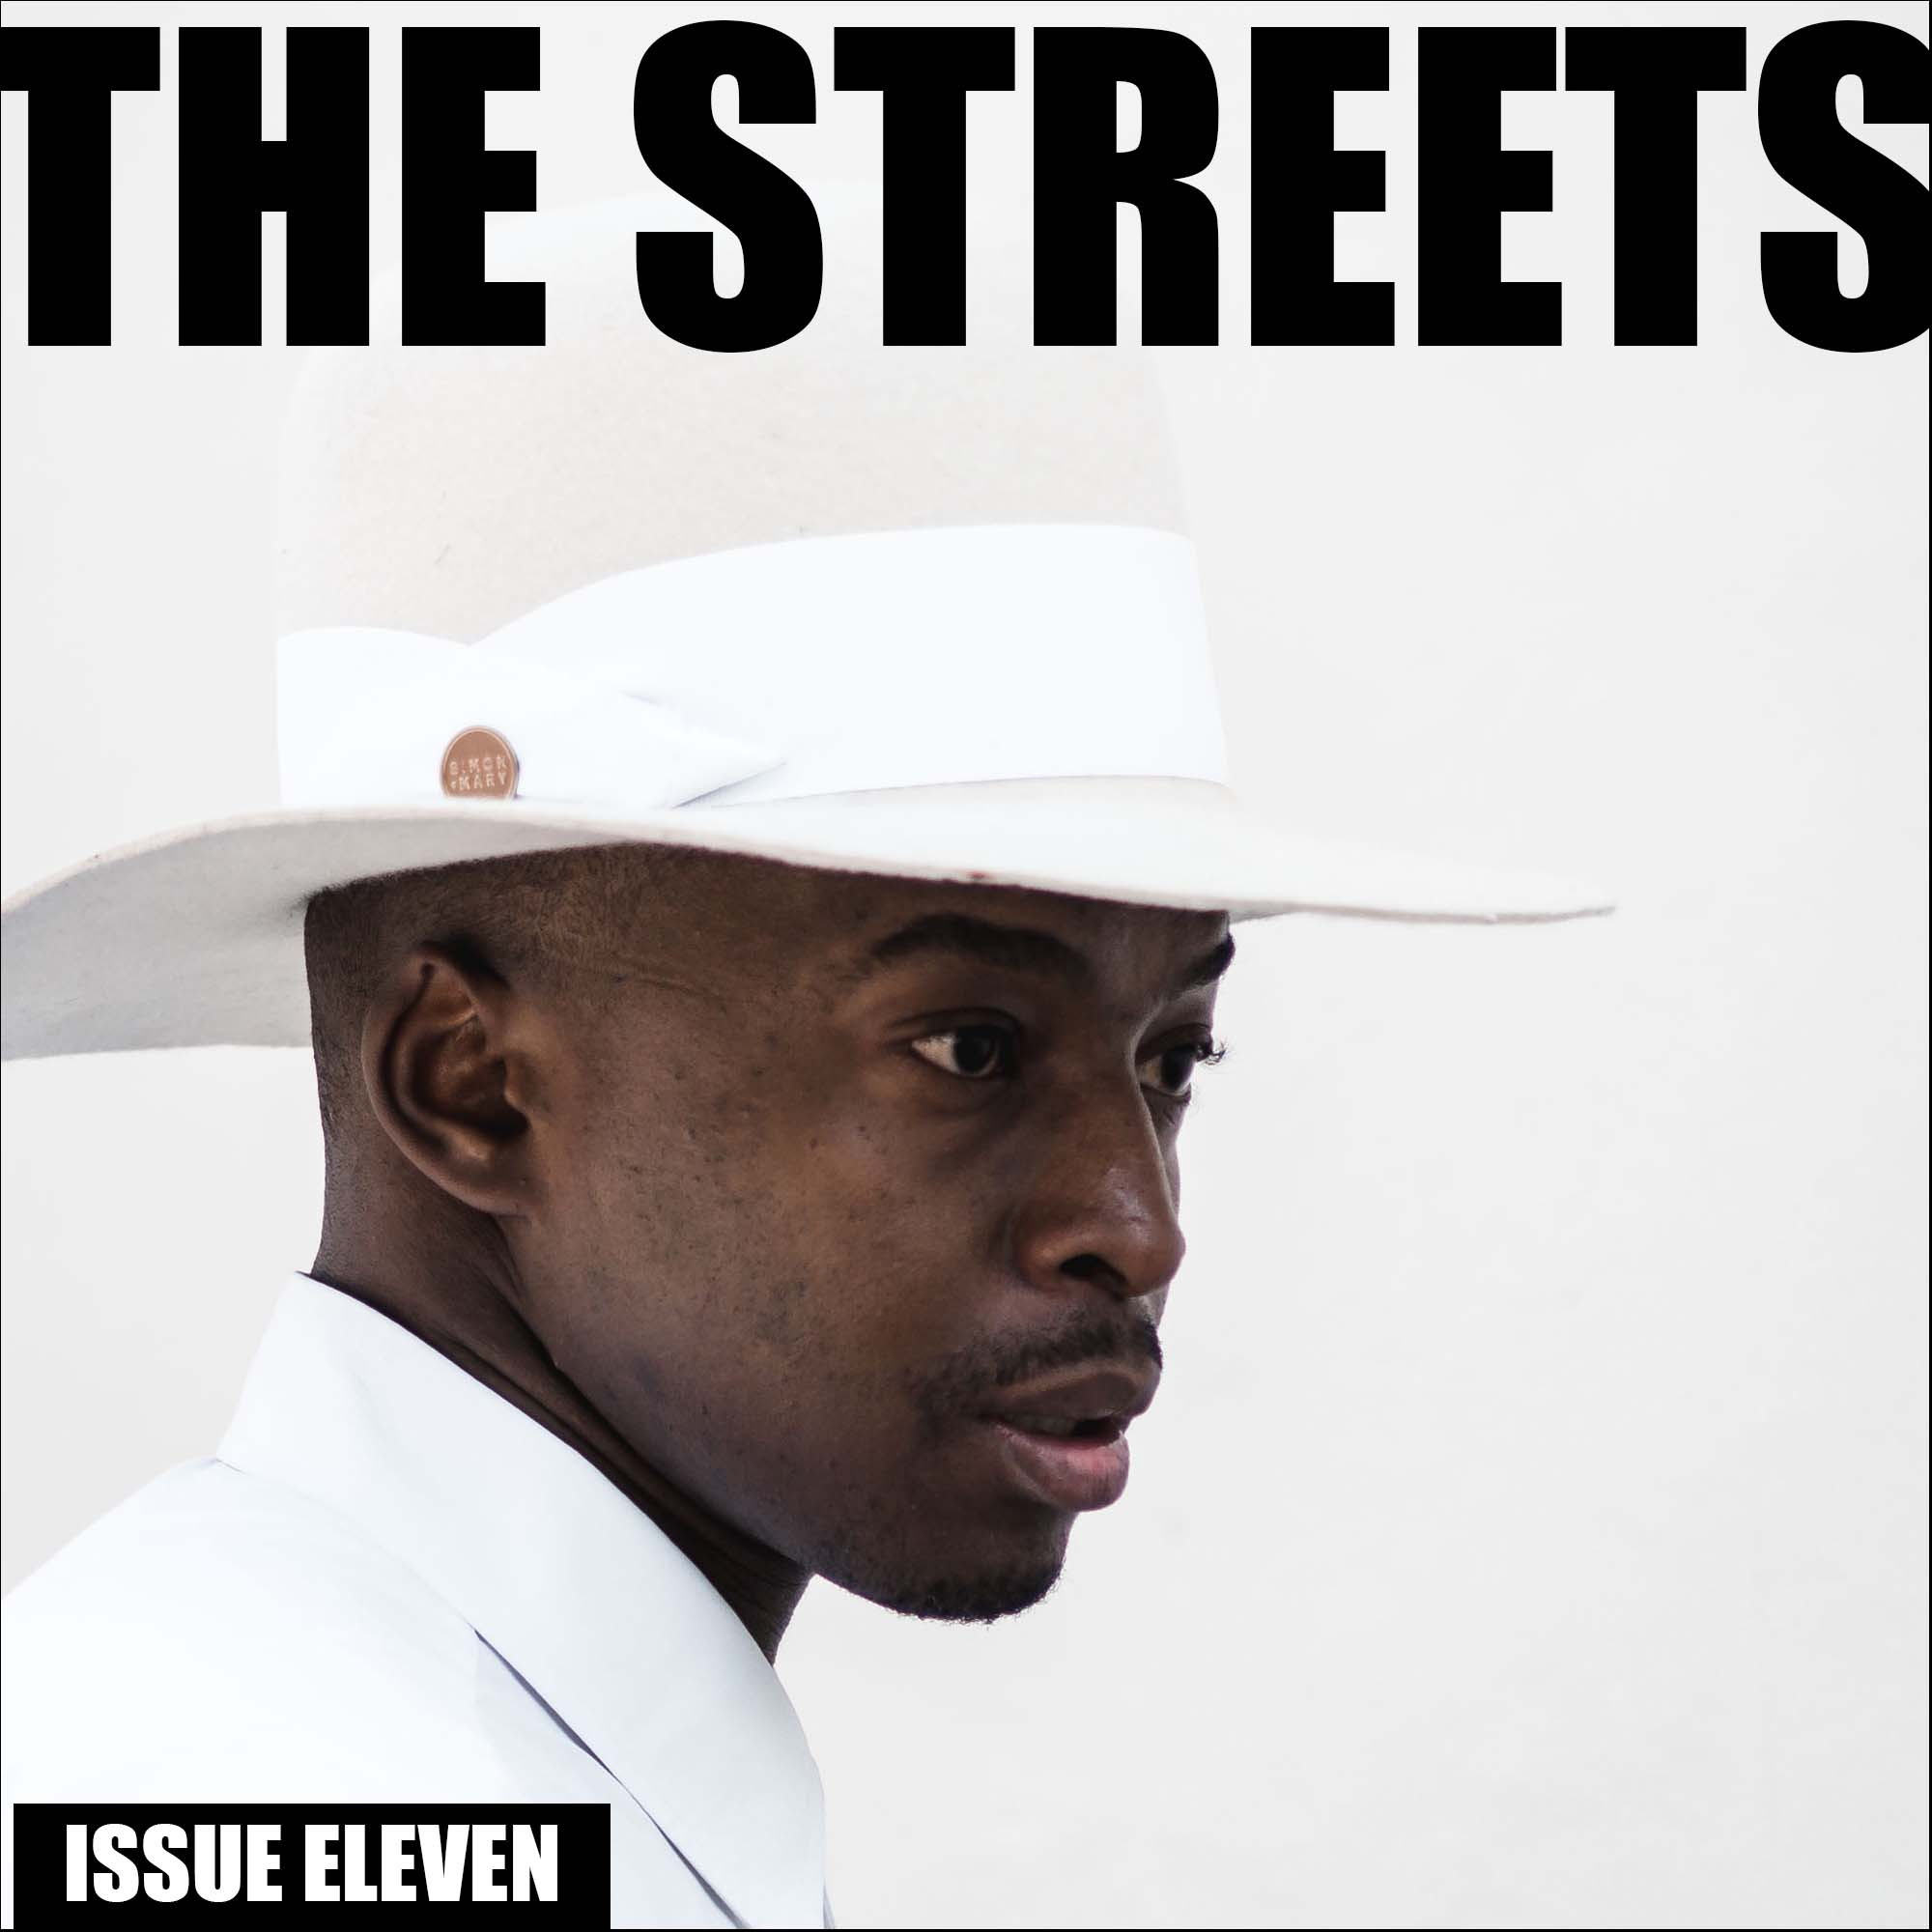 THE STREETS - Issue Eleven